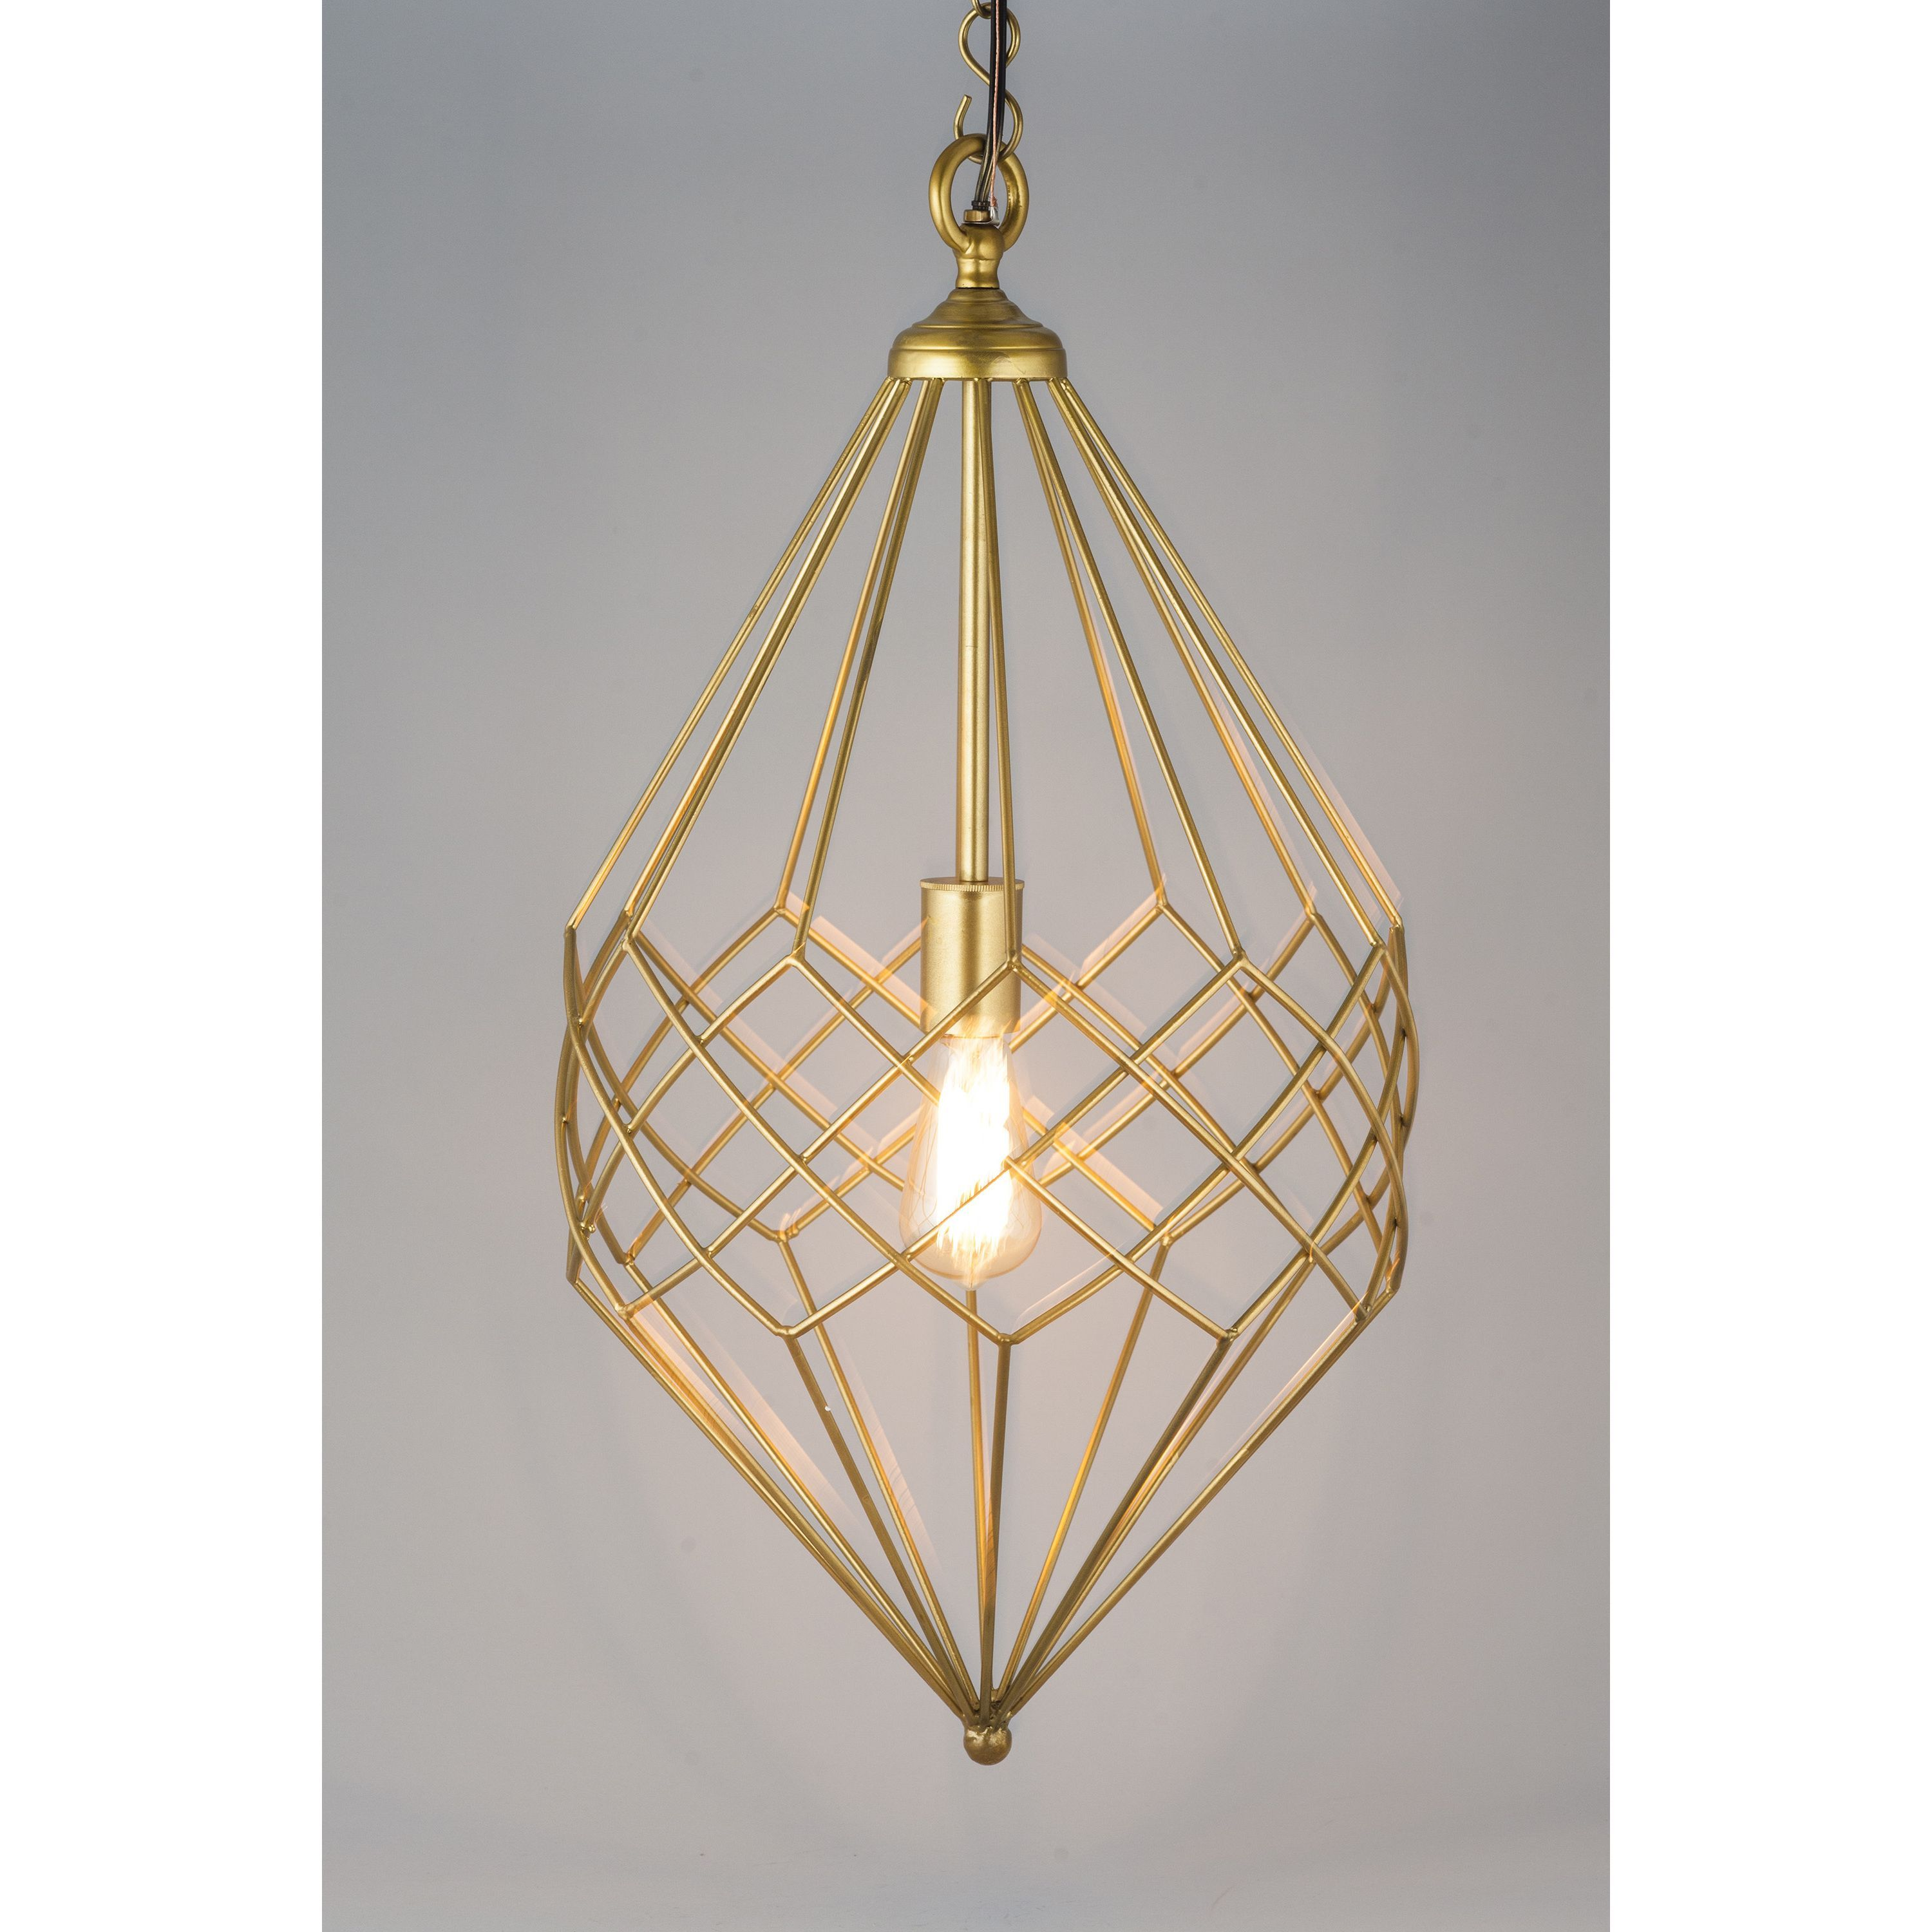 Small Wire Chandeliers Center Wiring A Chandelier Gold Pendant Pinterest Large Bedroom Rh Com Diagram Contemporary